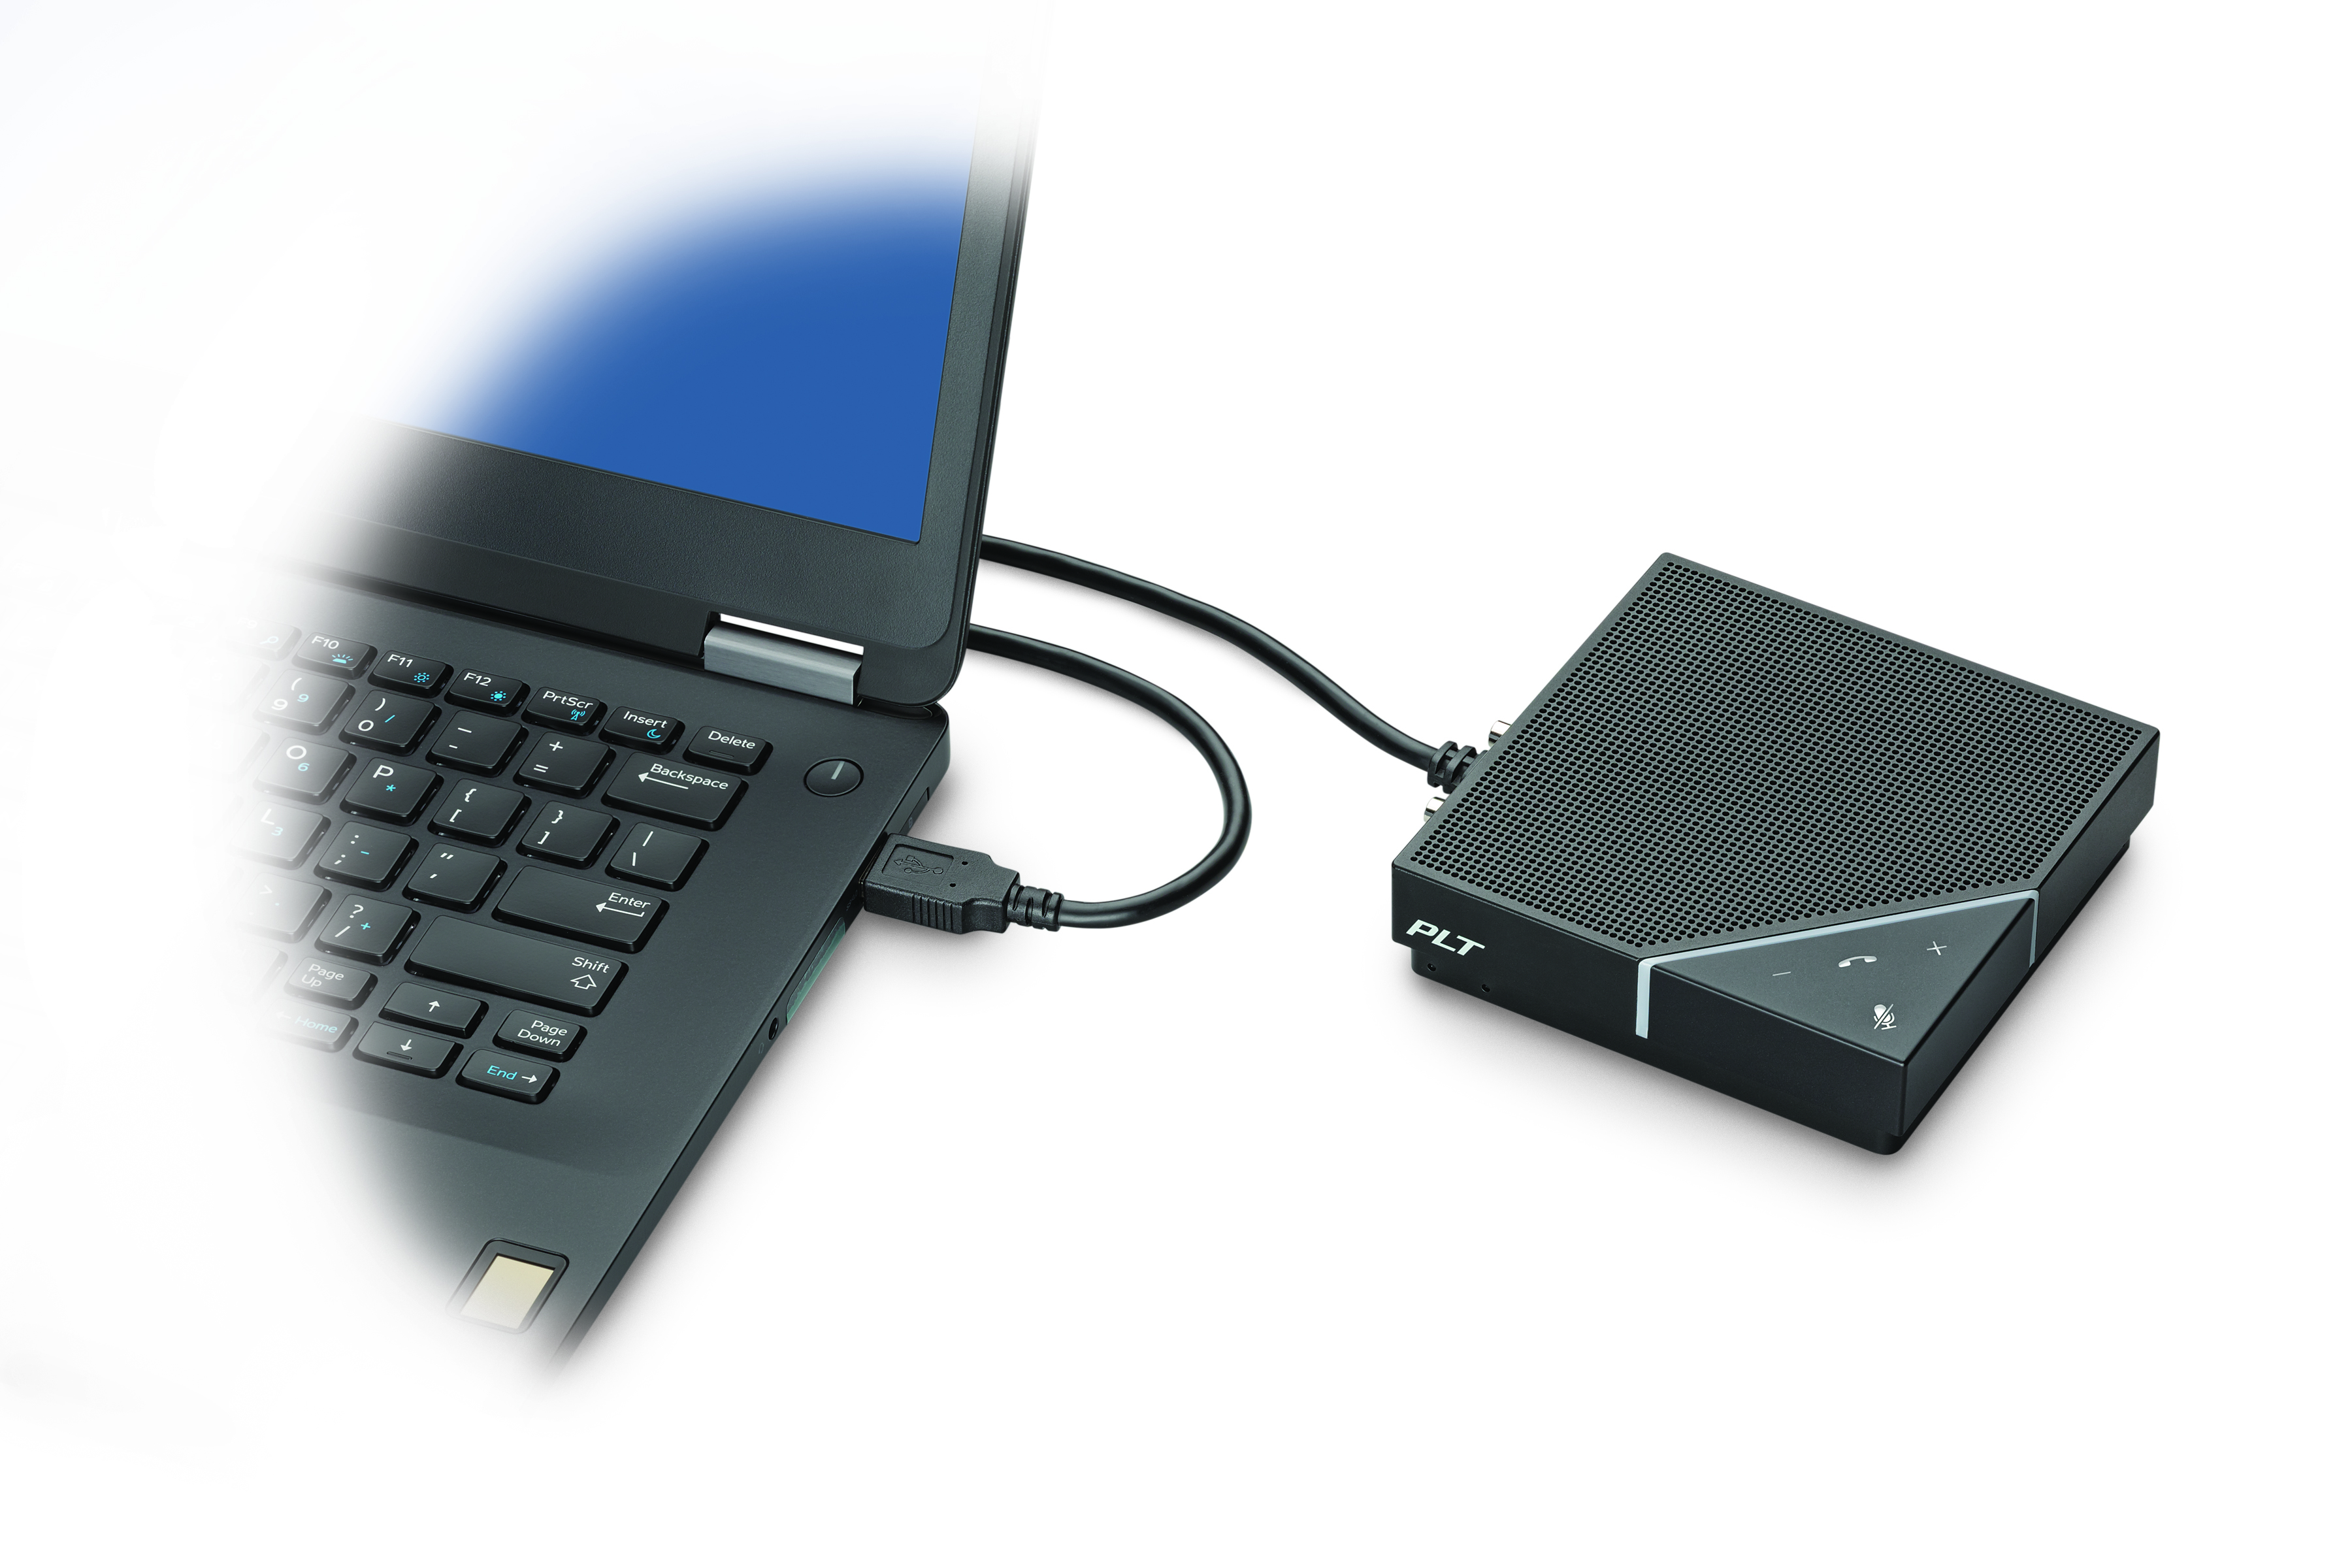 Calisto 7200 with Laptop